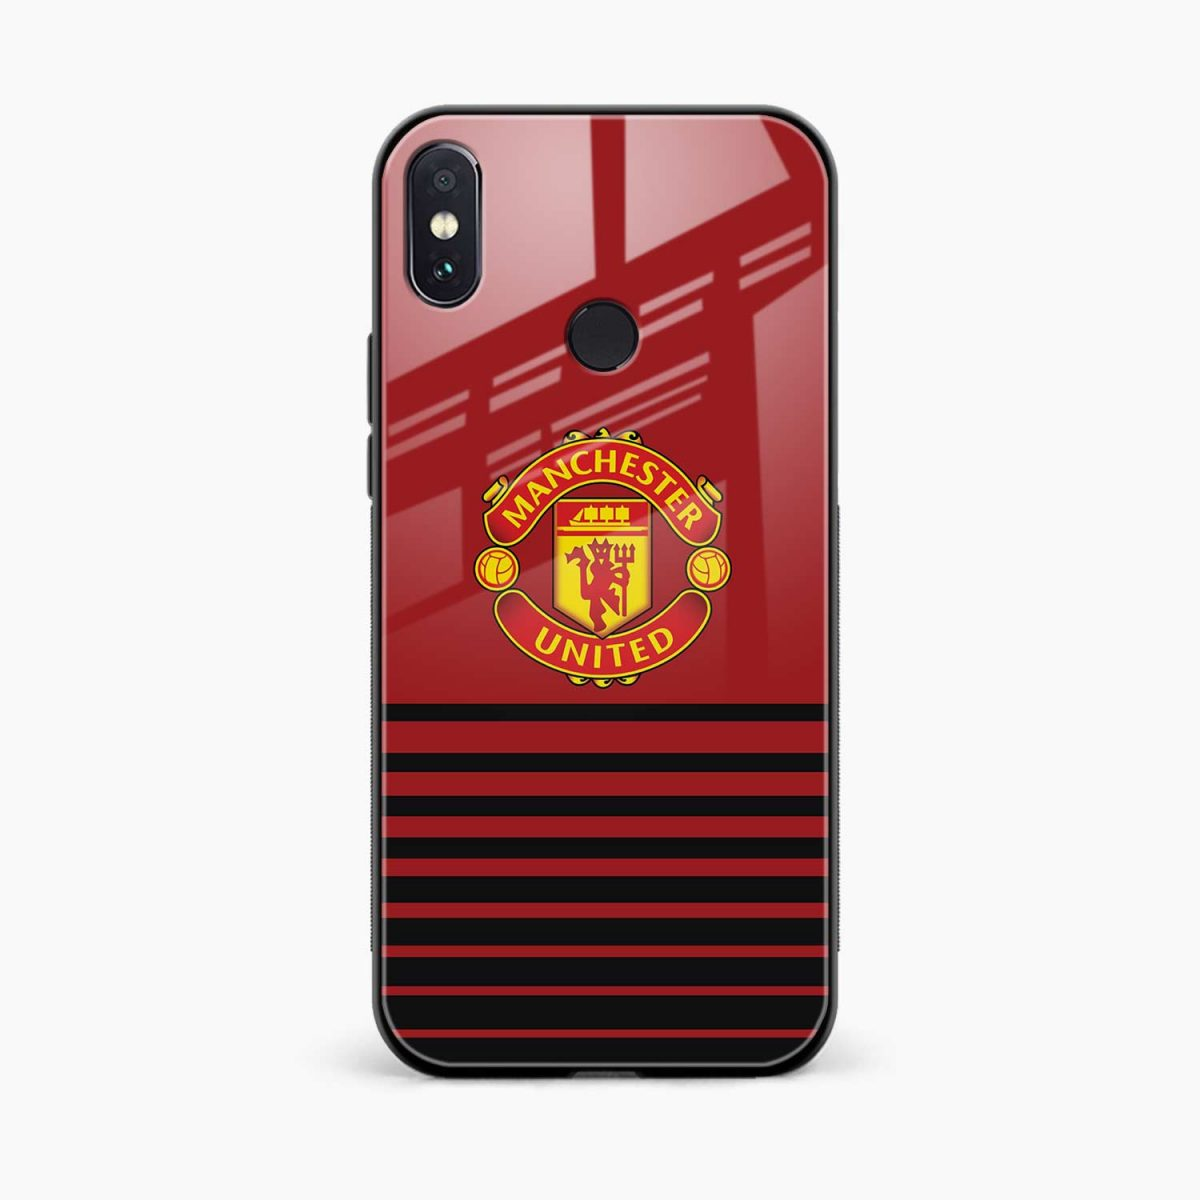 manchester united redmi note 5 pro back cover front view